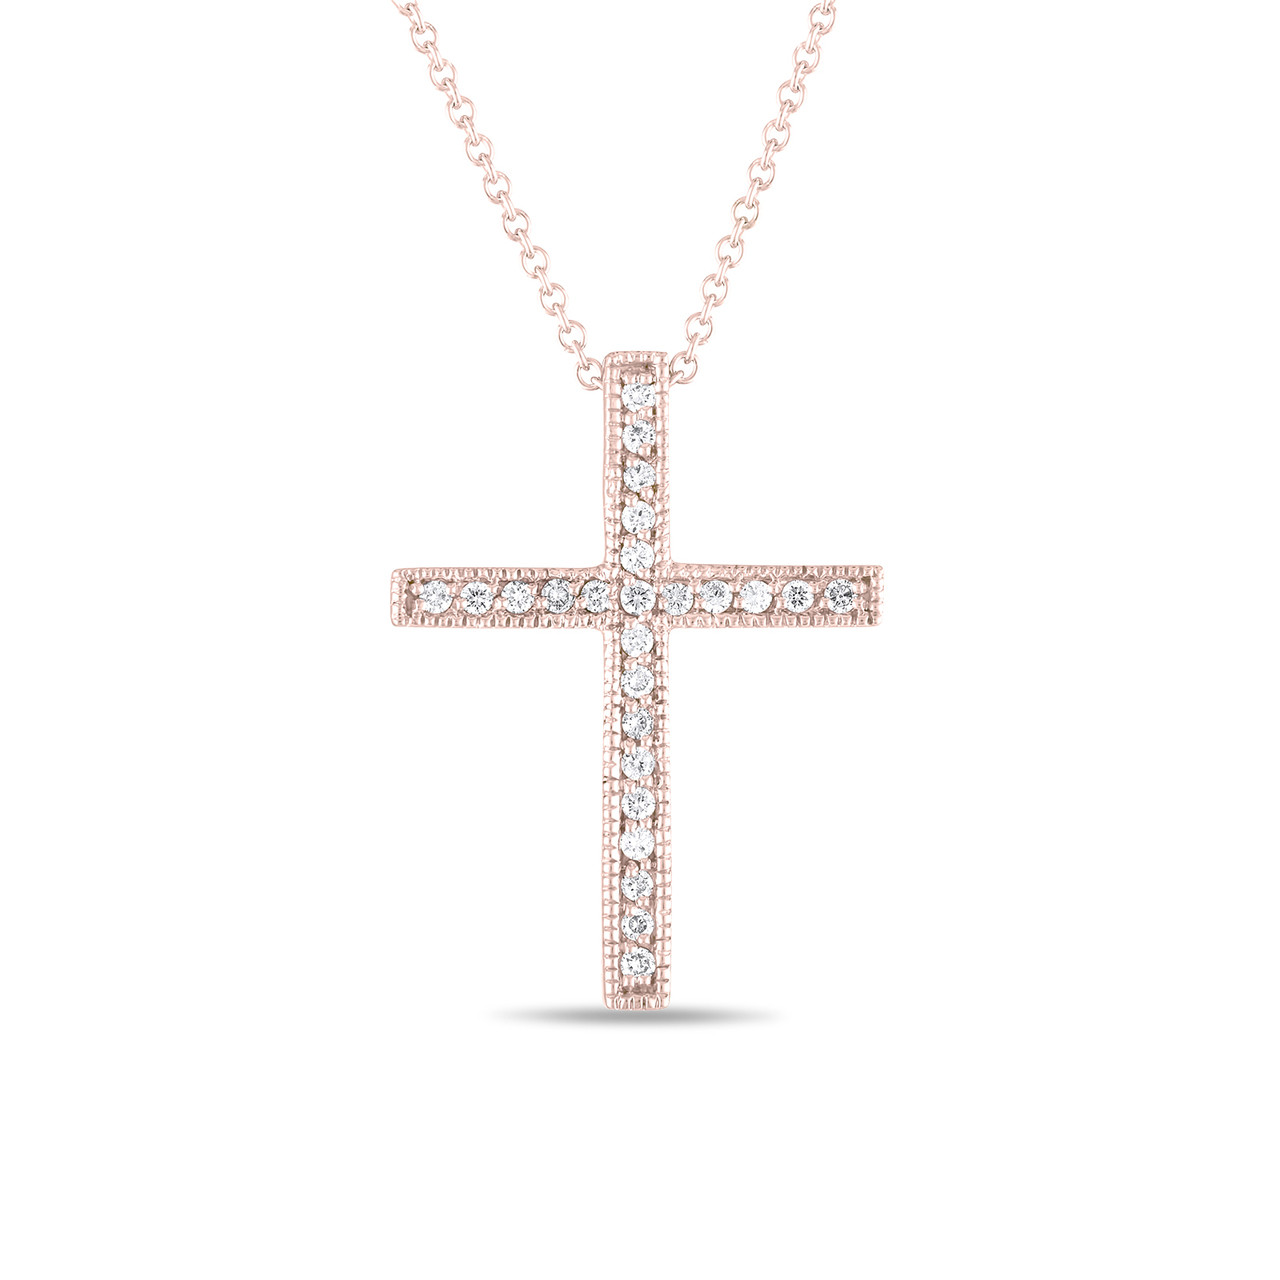 Pave diamond cross pendant necklace 025 carat 14k rose gold handmade aloadofball Image collections